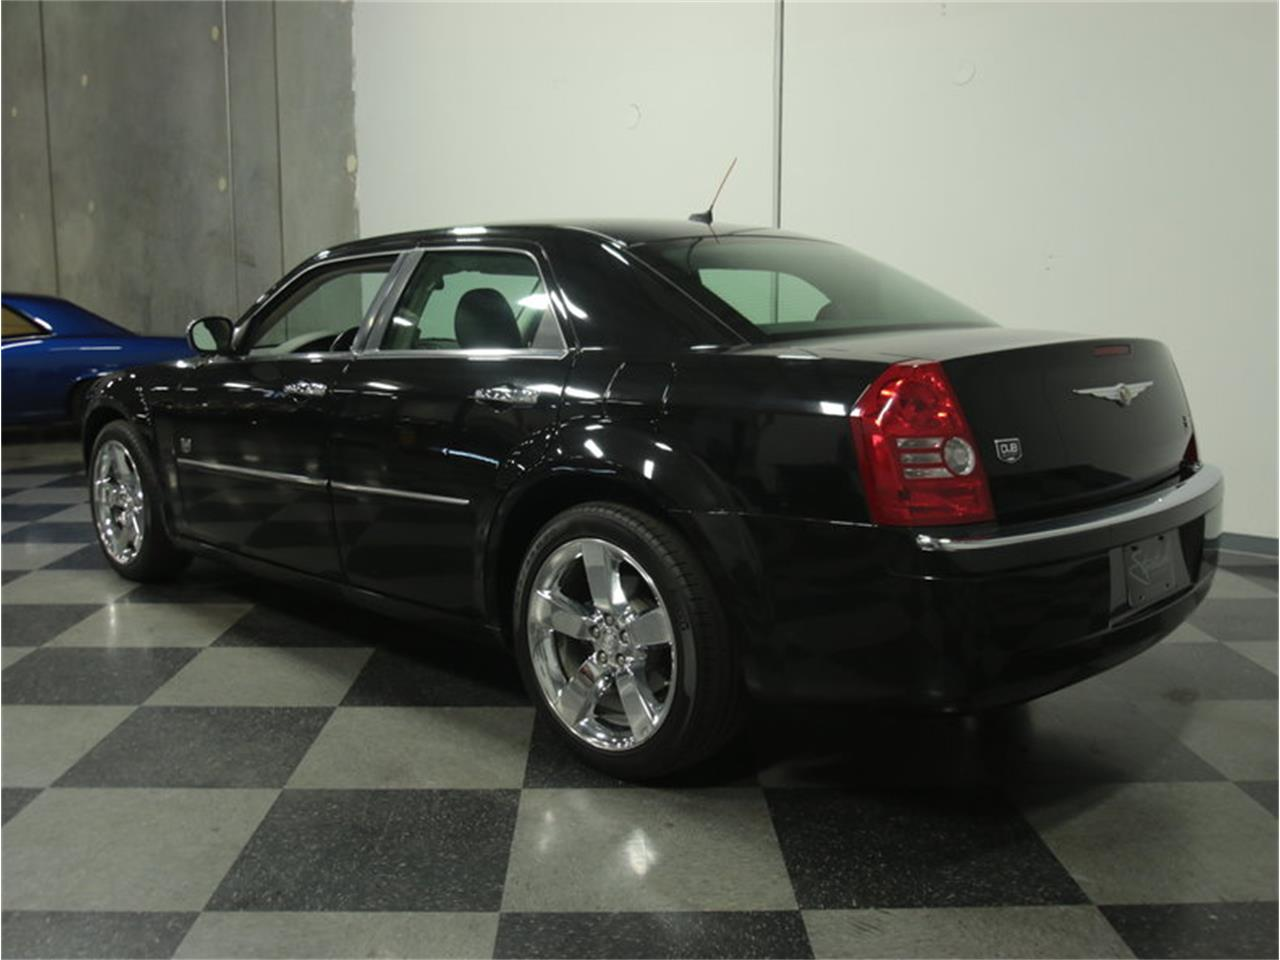 chrysler 300 dub 2008 touring edition lithia springs georgia classic cc classiccars financing inspection insurance transport